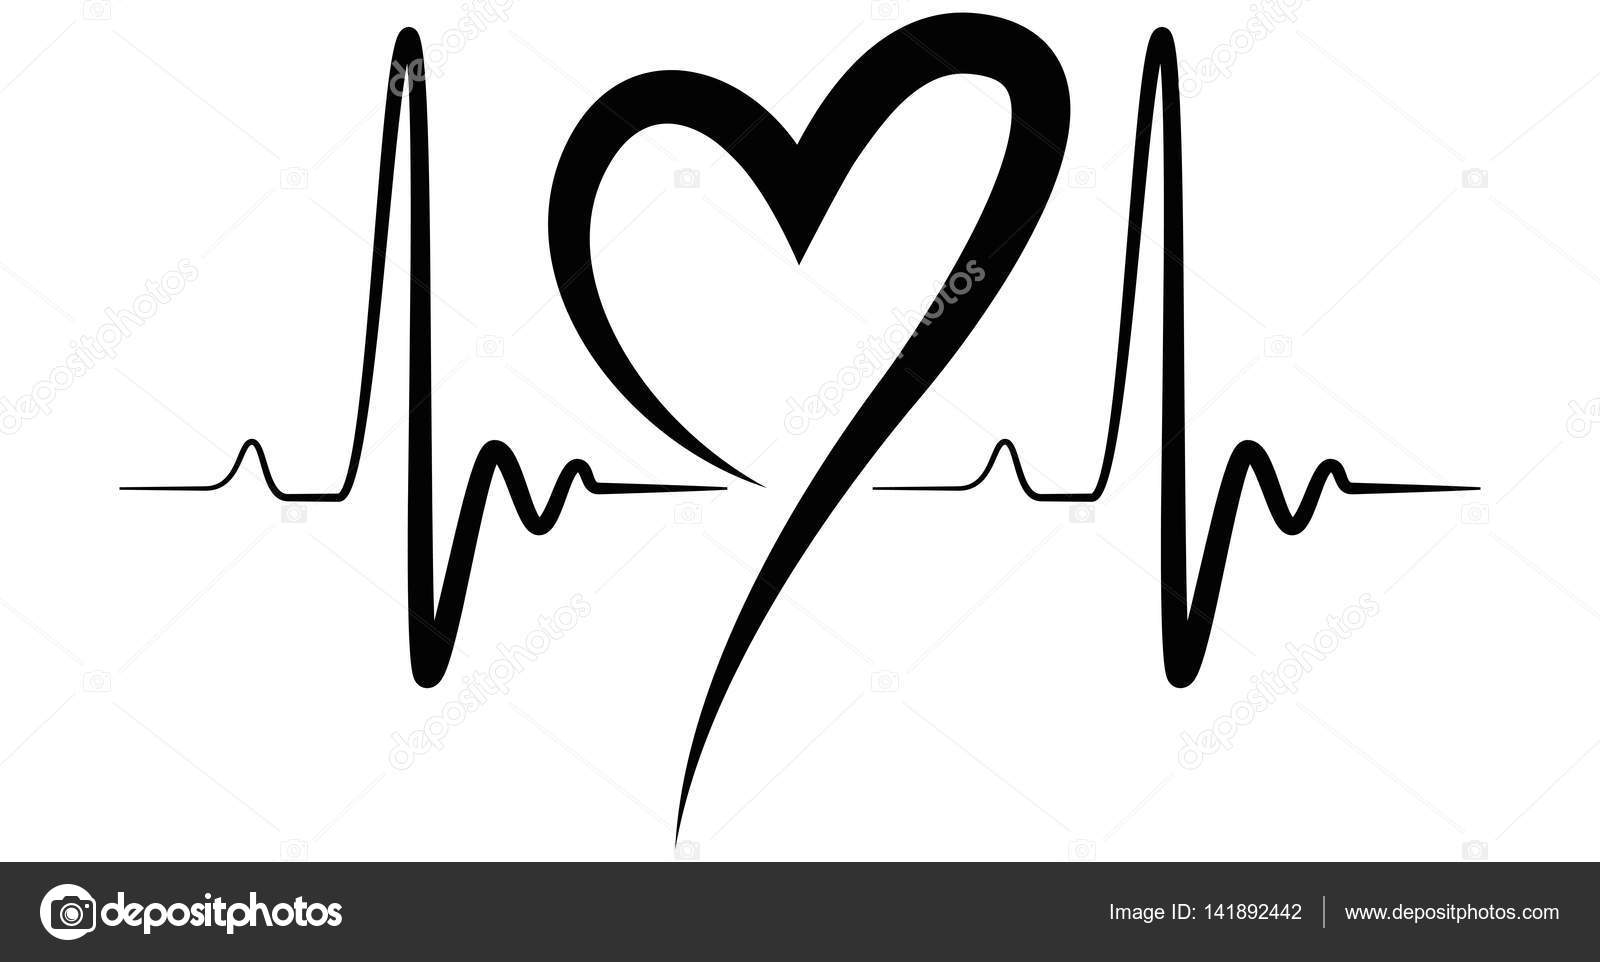 heart stethoscope clipart black and white download black